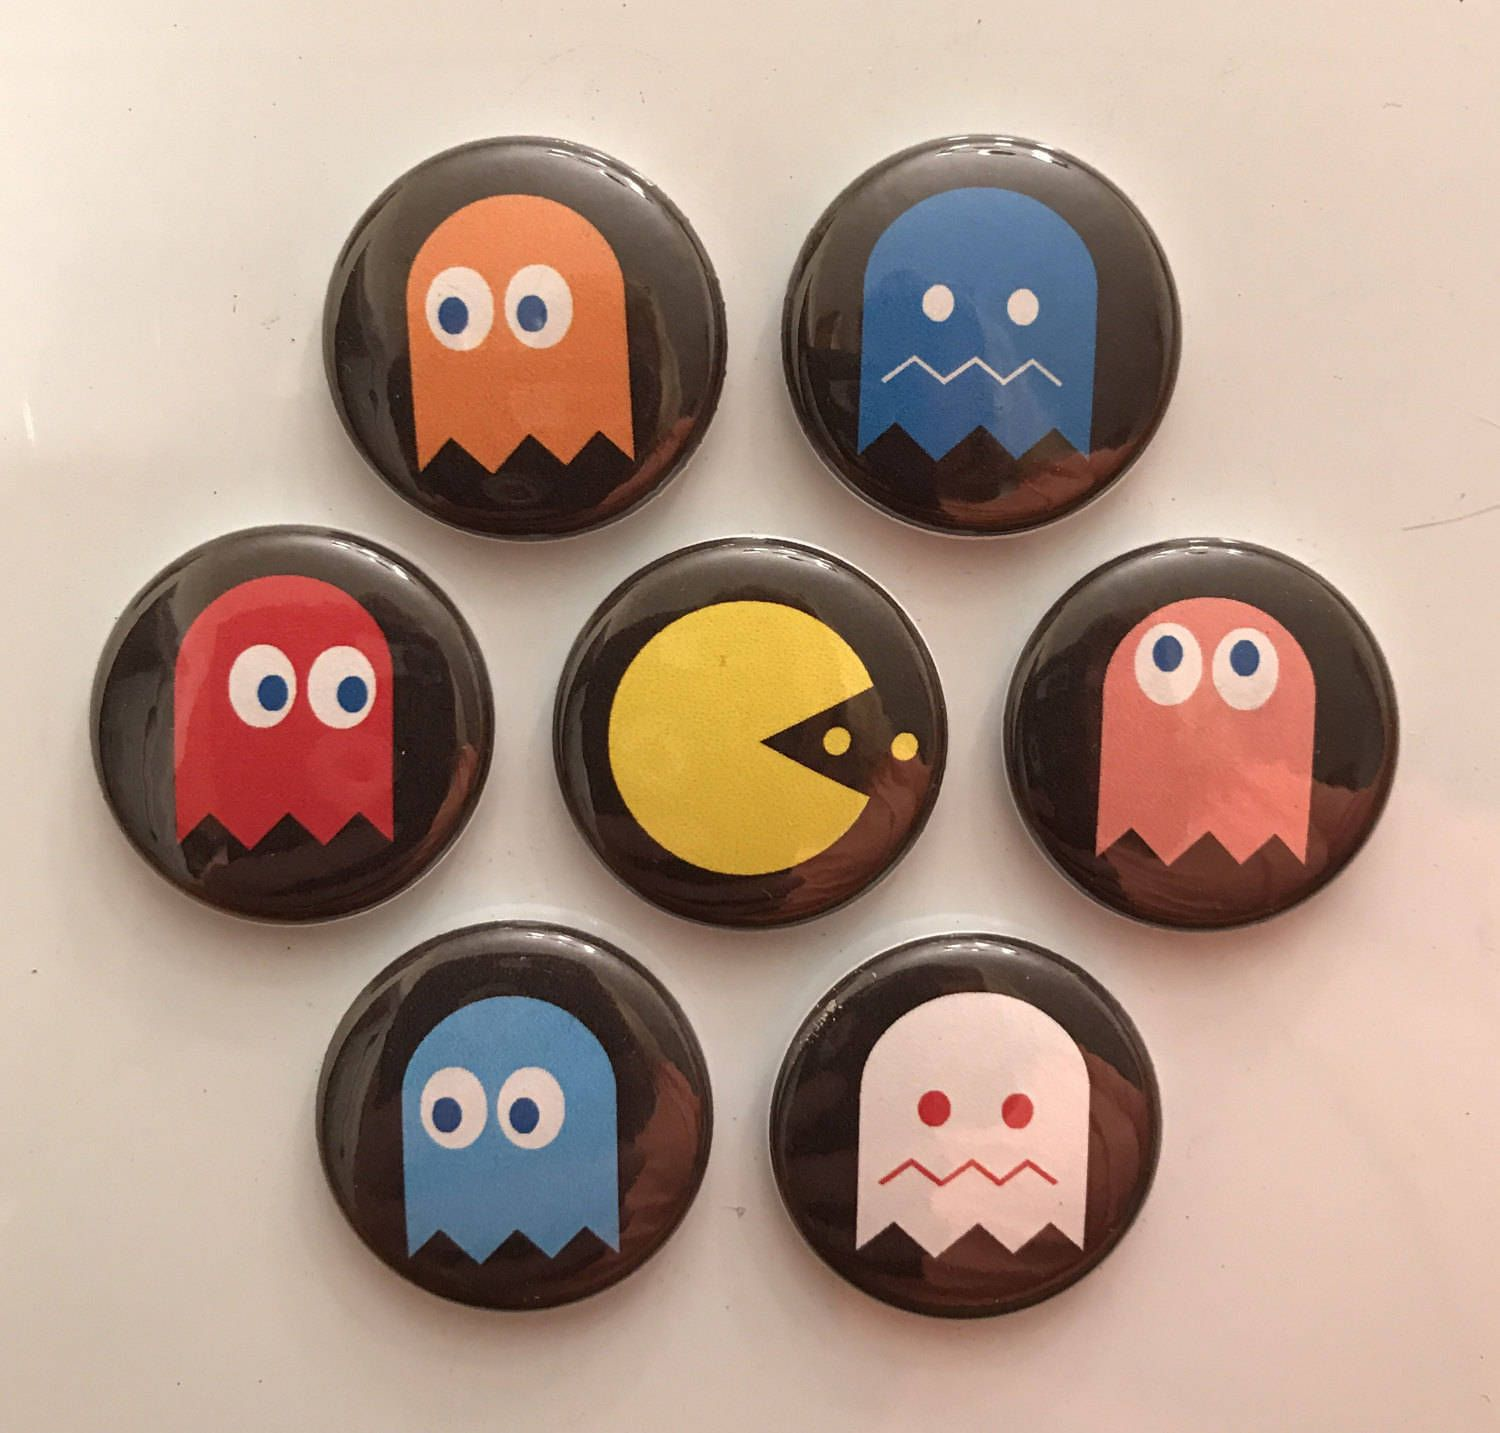 Pacman 1 Magnets - set of 7